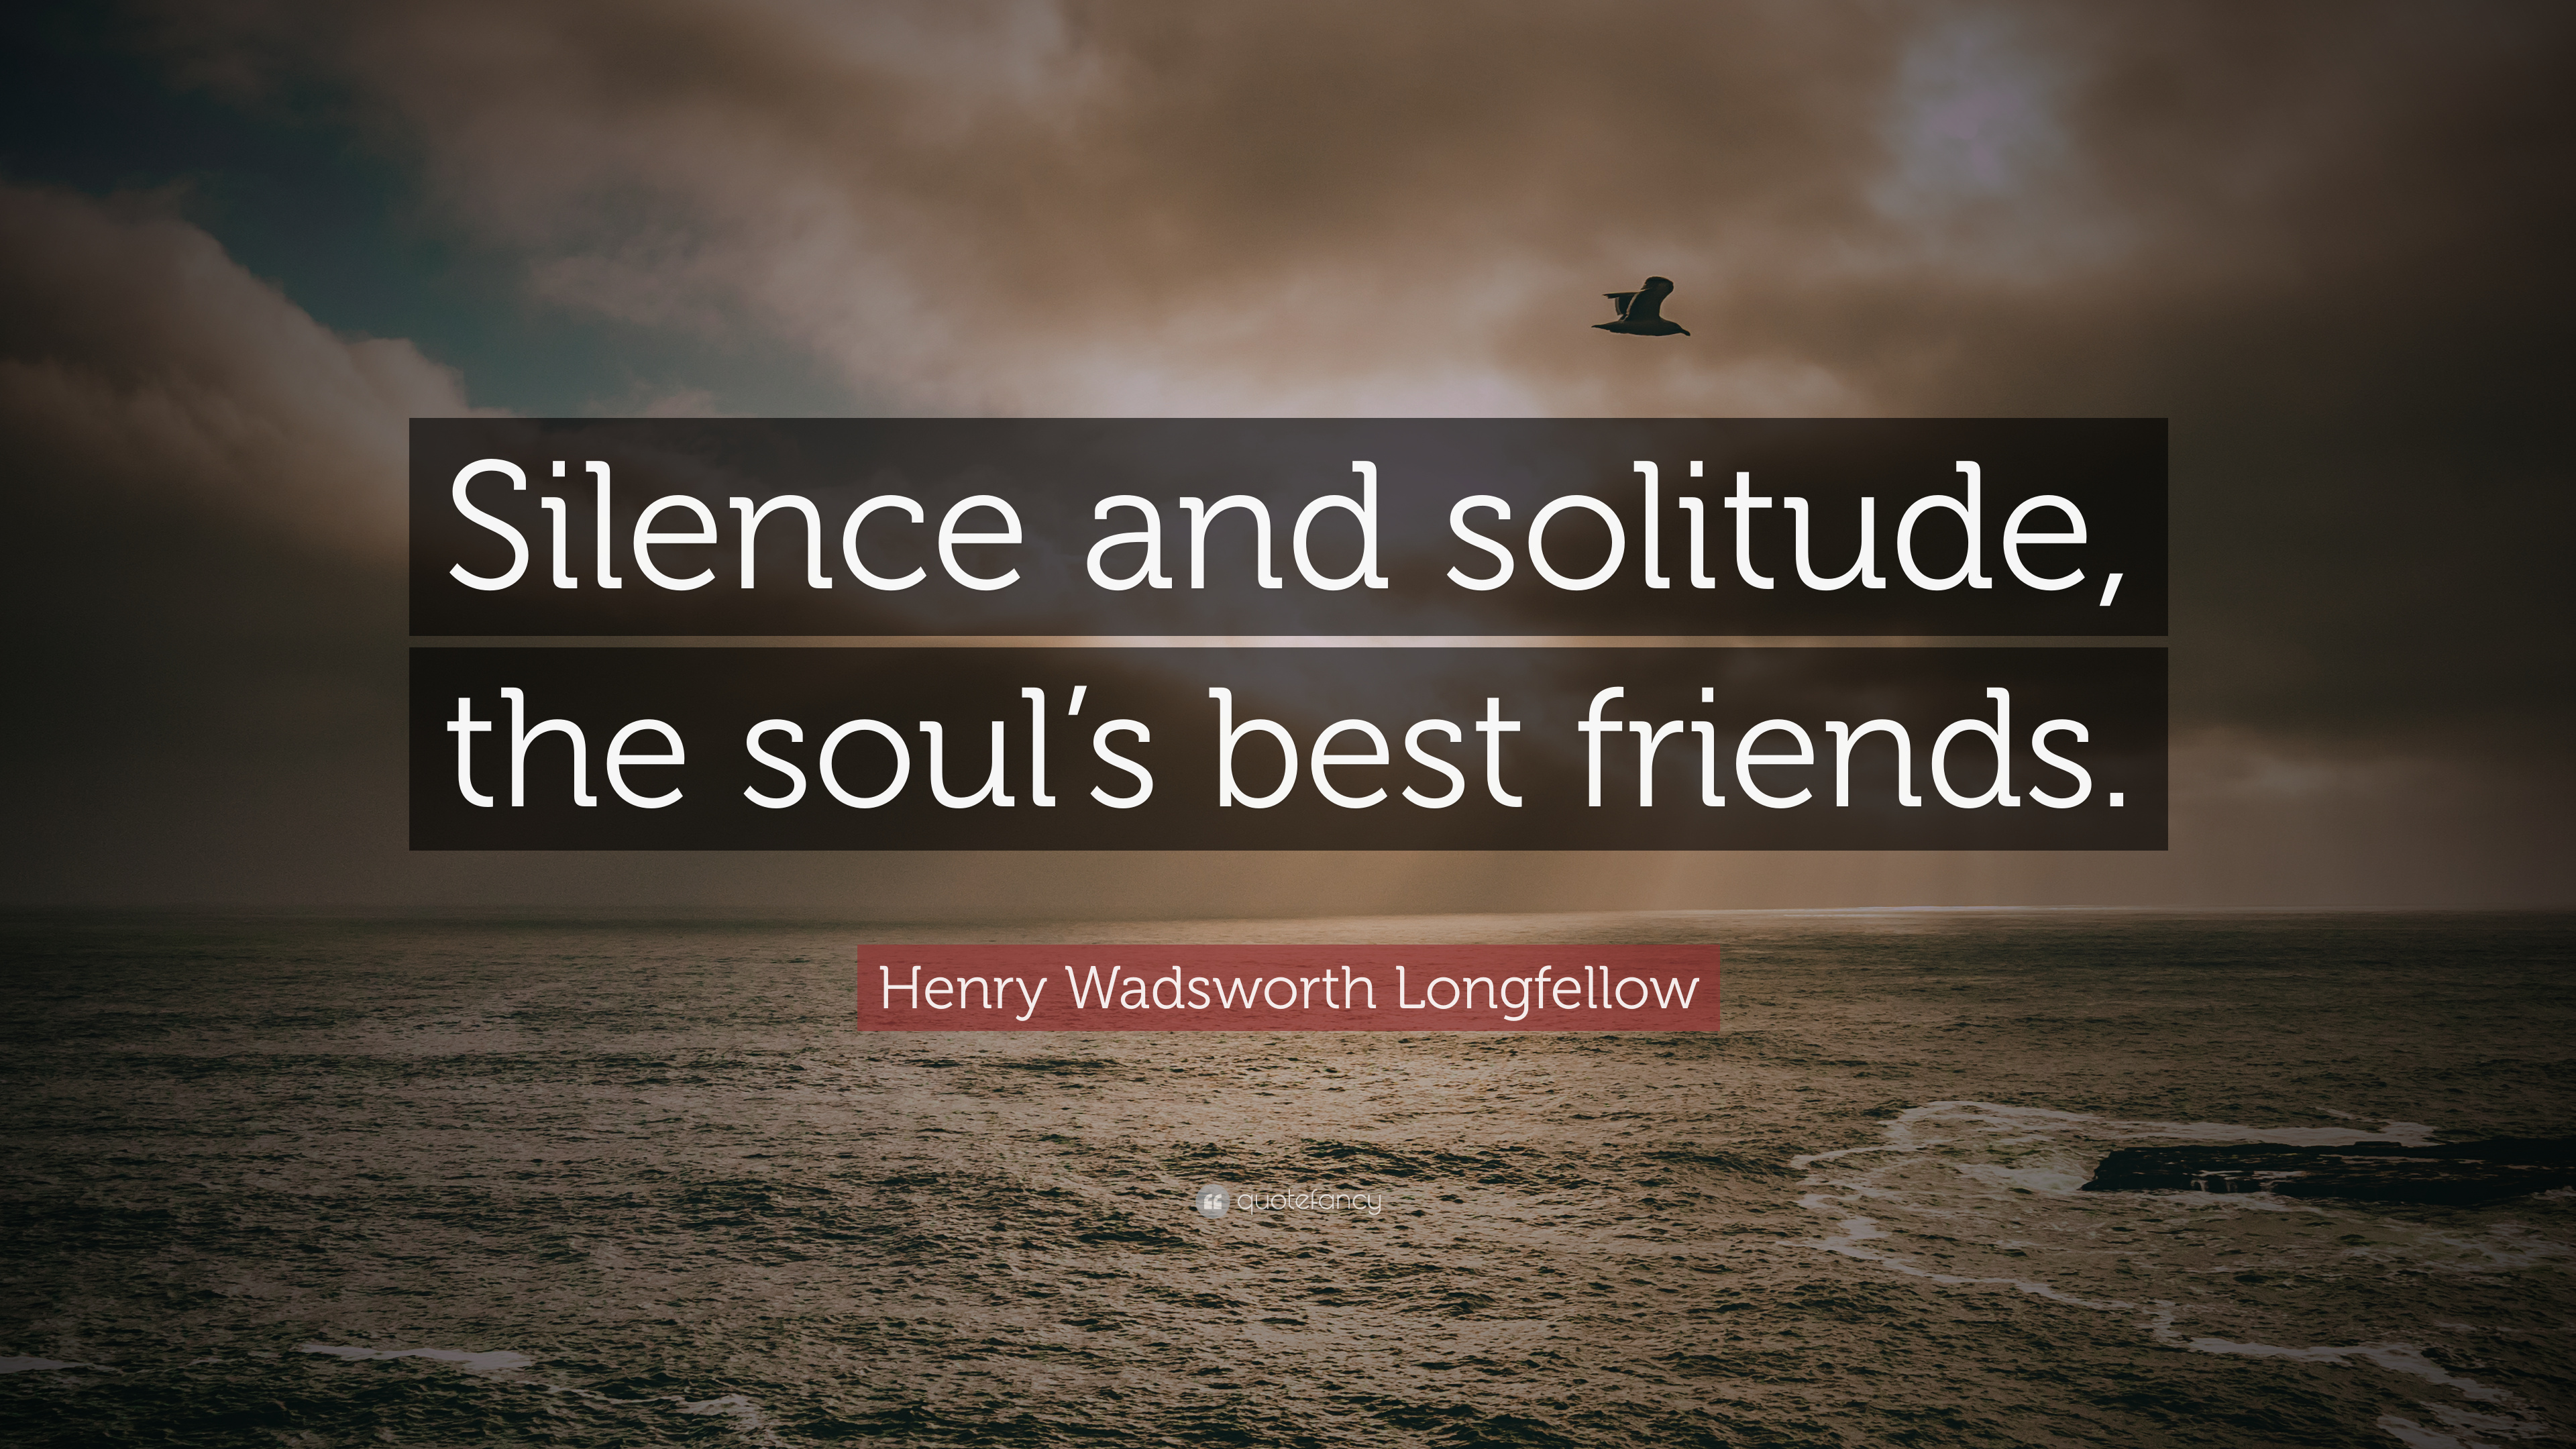 Henry Wadsworth Longfellow Quote Silence And Solitude The Soul S Best Friends 7 Wallpapers Quotefancy